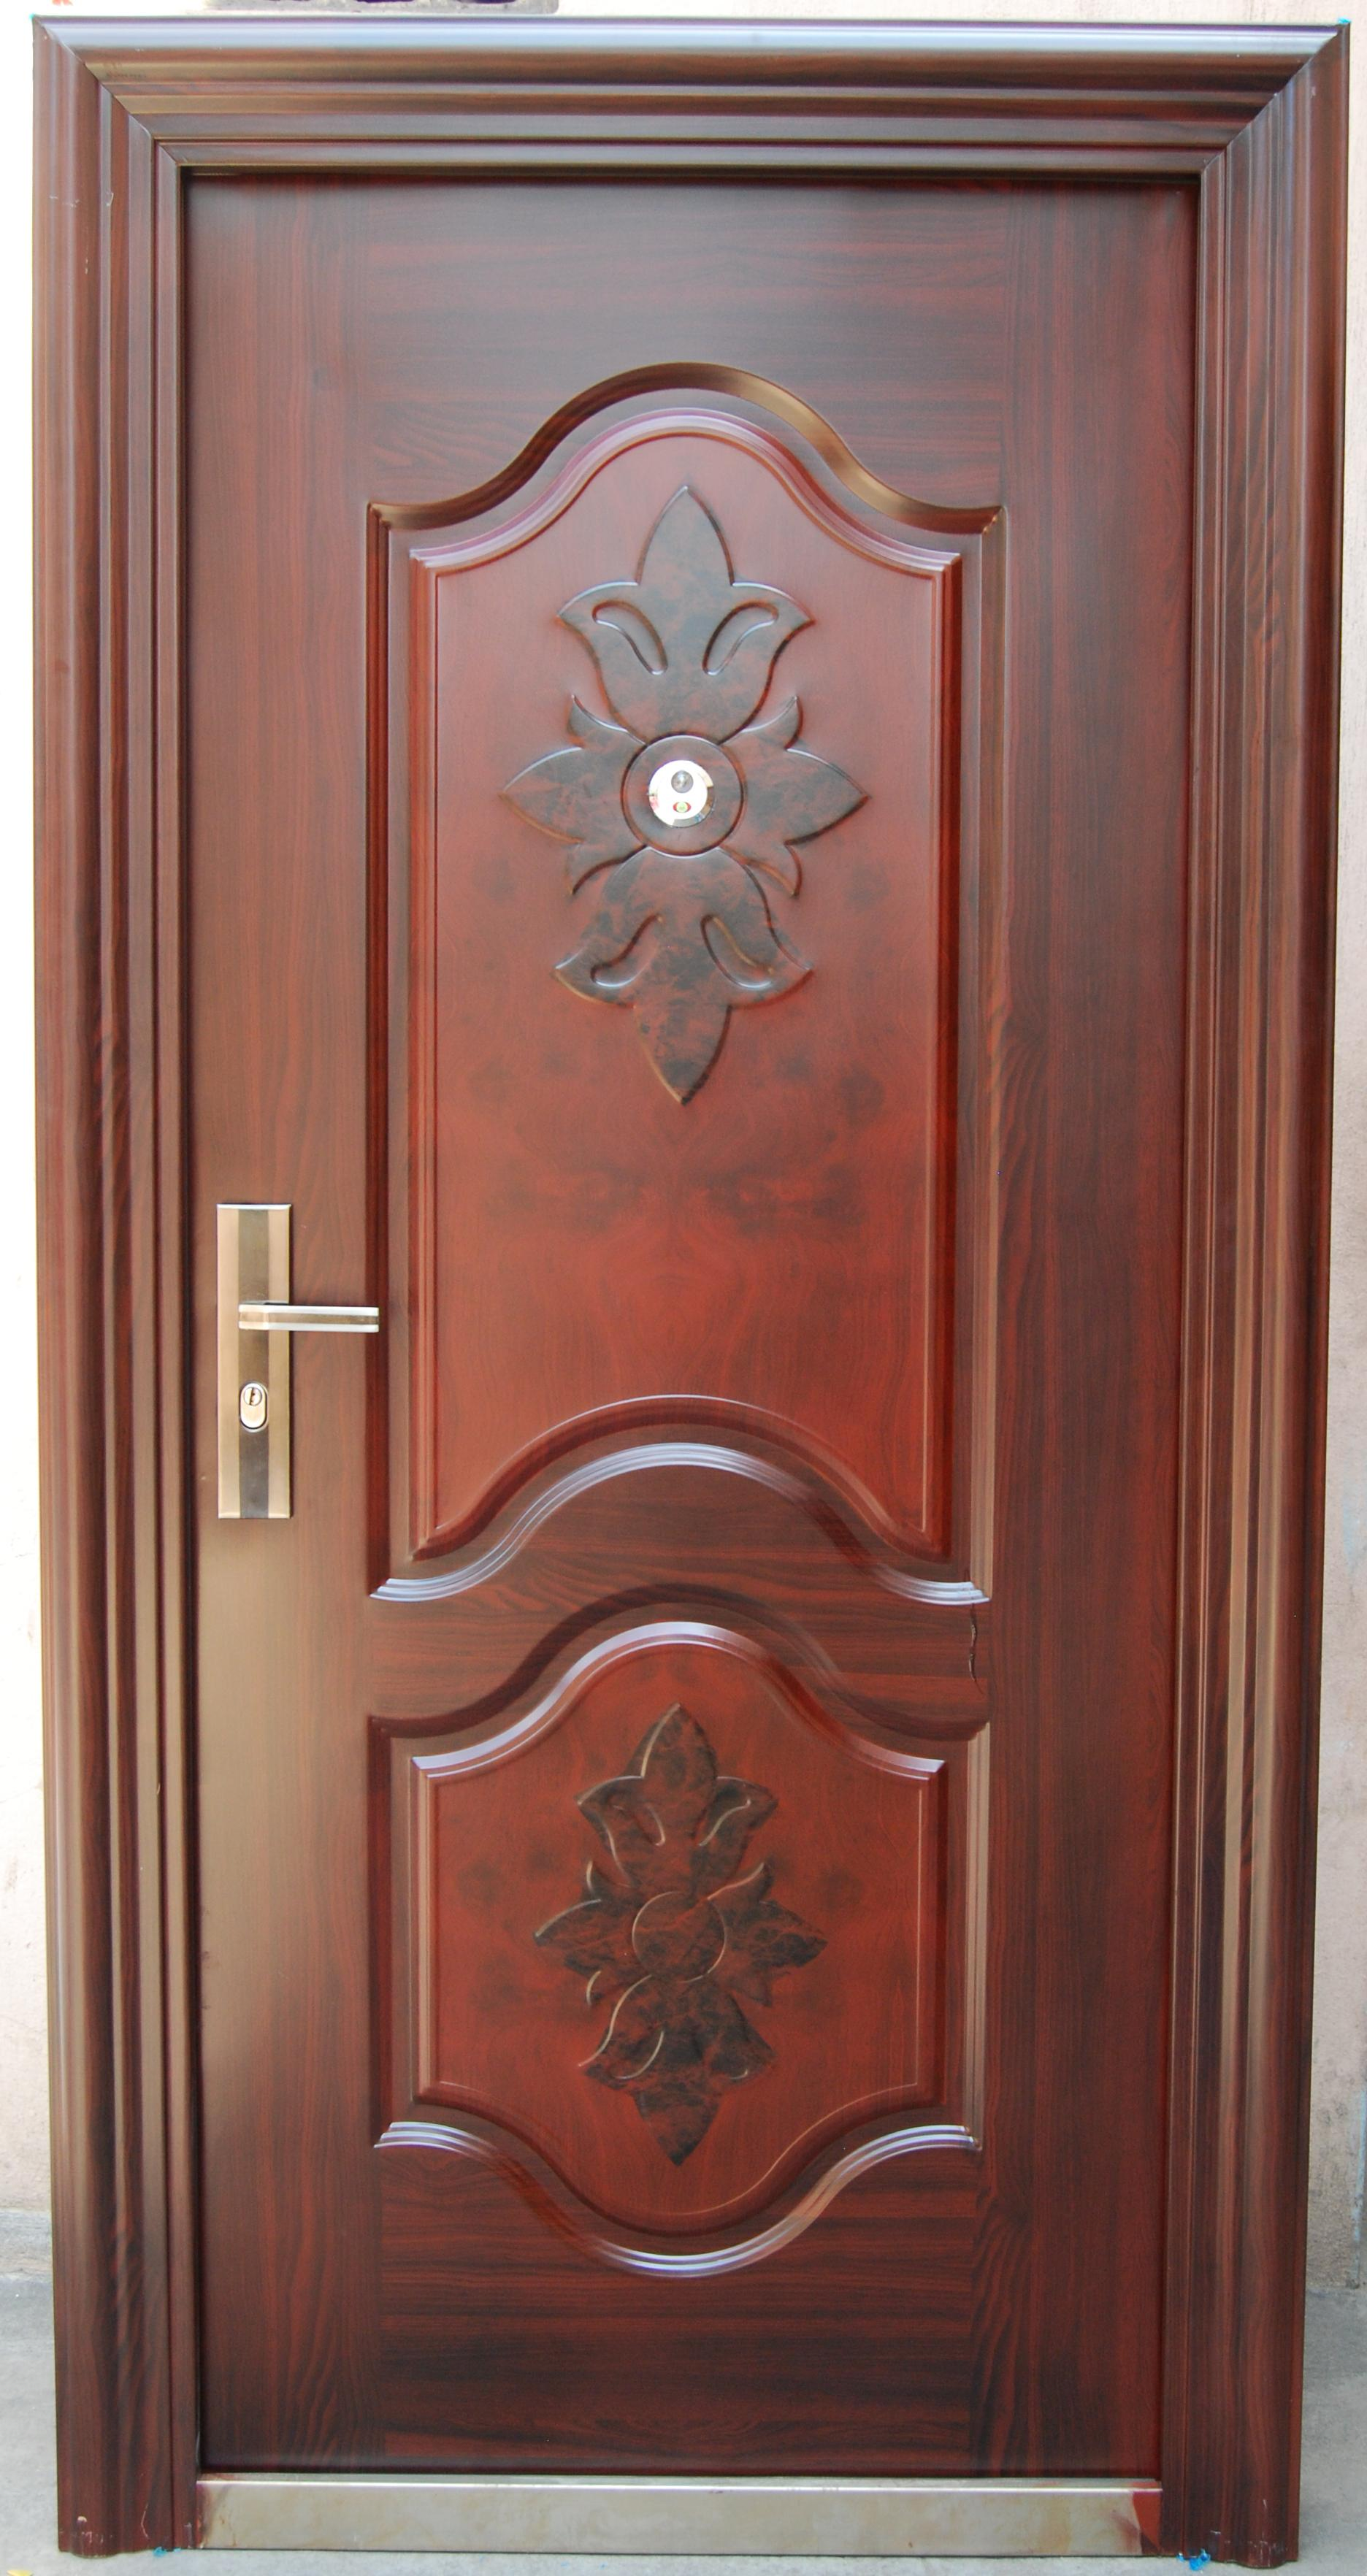 Steel security doors gharexpert for Traditional wooden door design ideas